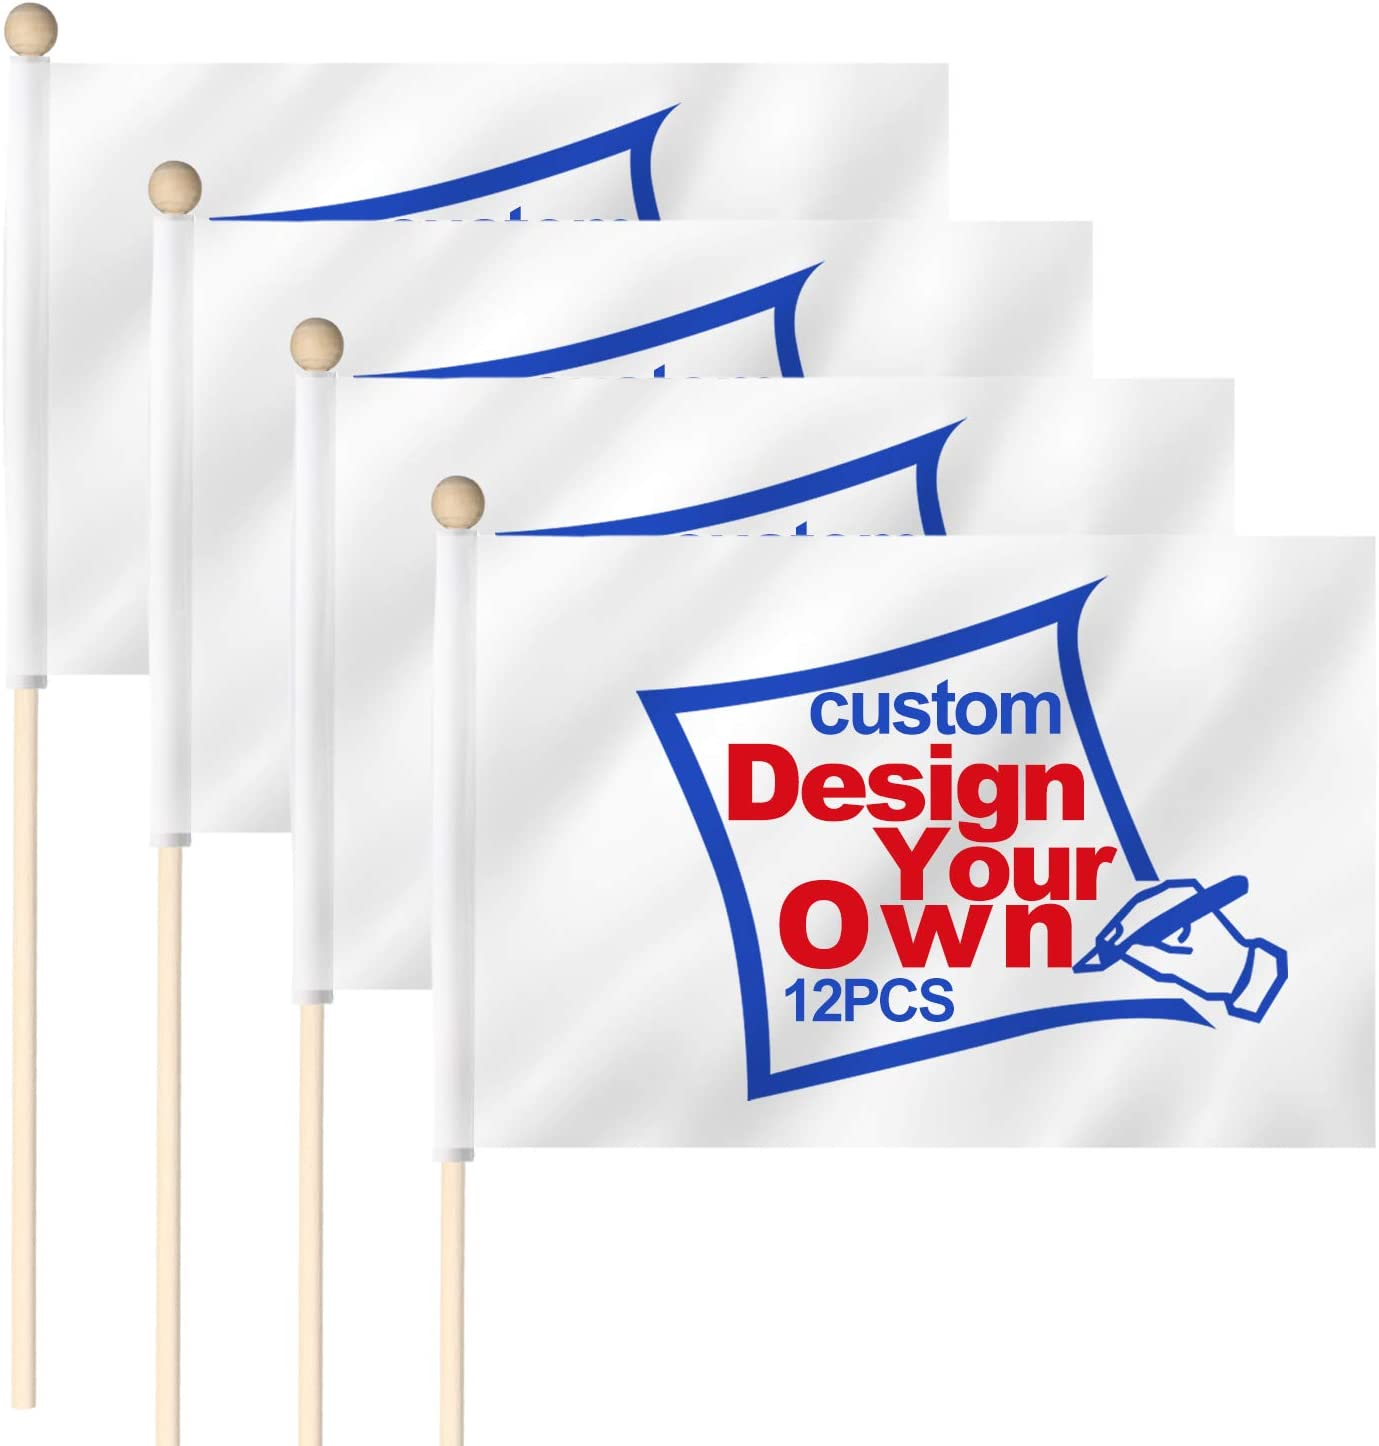 ANLEY Custom Miniature Stick Flag 4X6 in with Wooden Pole - Print Your Own Logo/Design/Words - Fade Resistance & Easy Peasy - Customized Handheld Mini Flags Banners (1 Dozen)